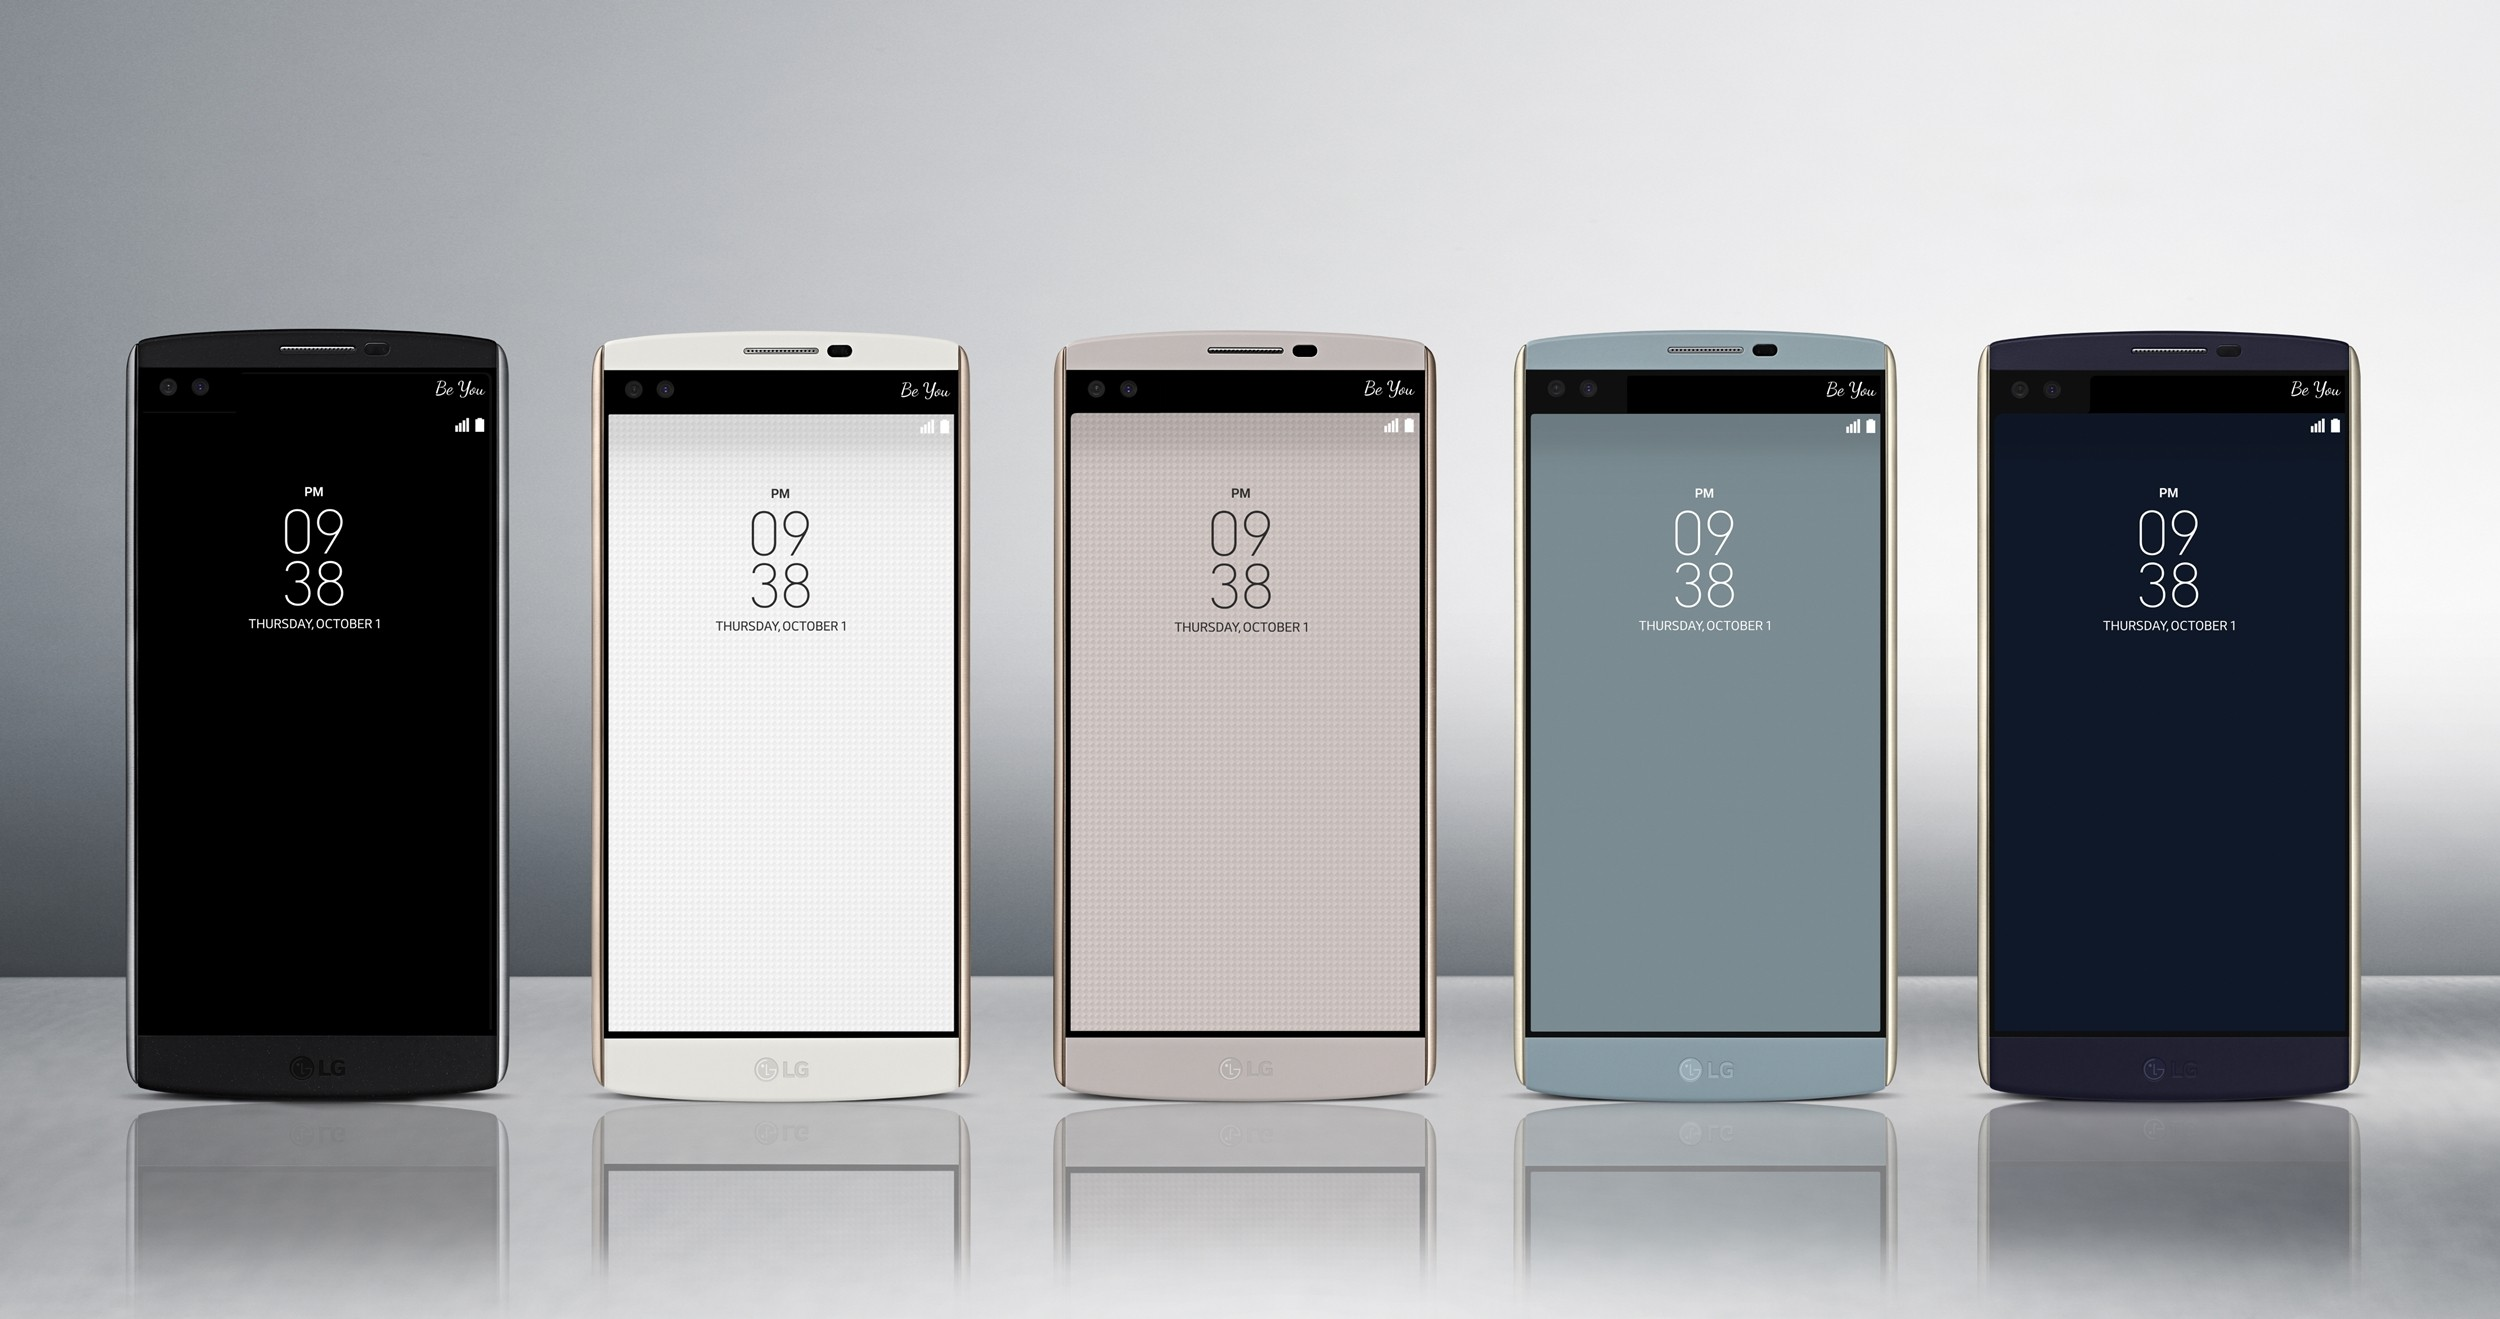 How To Install Android 7 0 Nougat Based Rom On Lg V10 Smartphone Android Advices